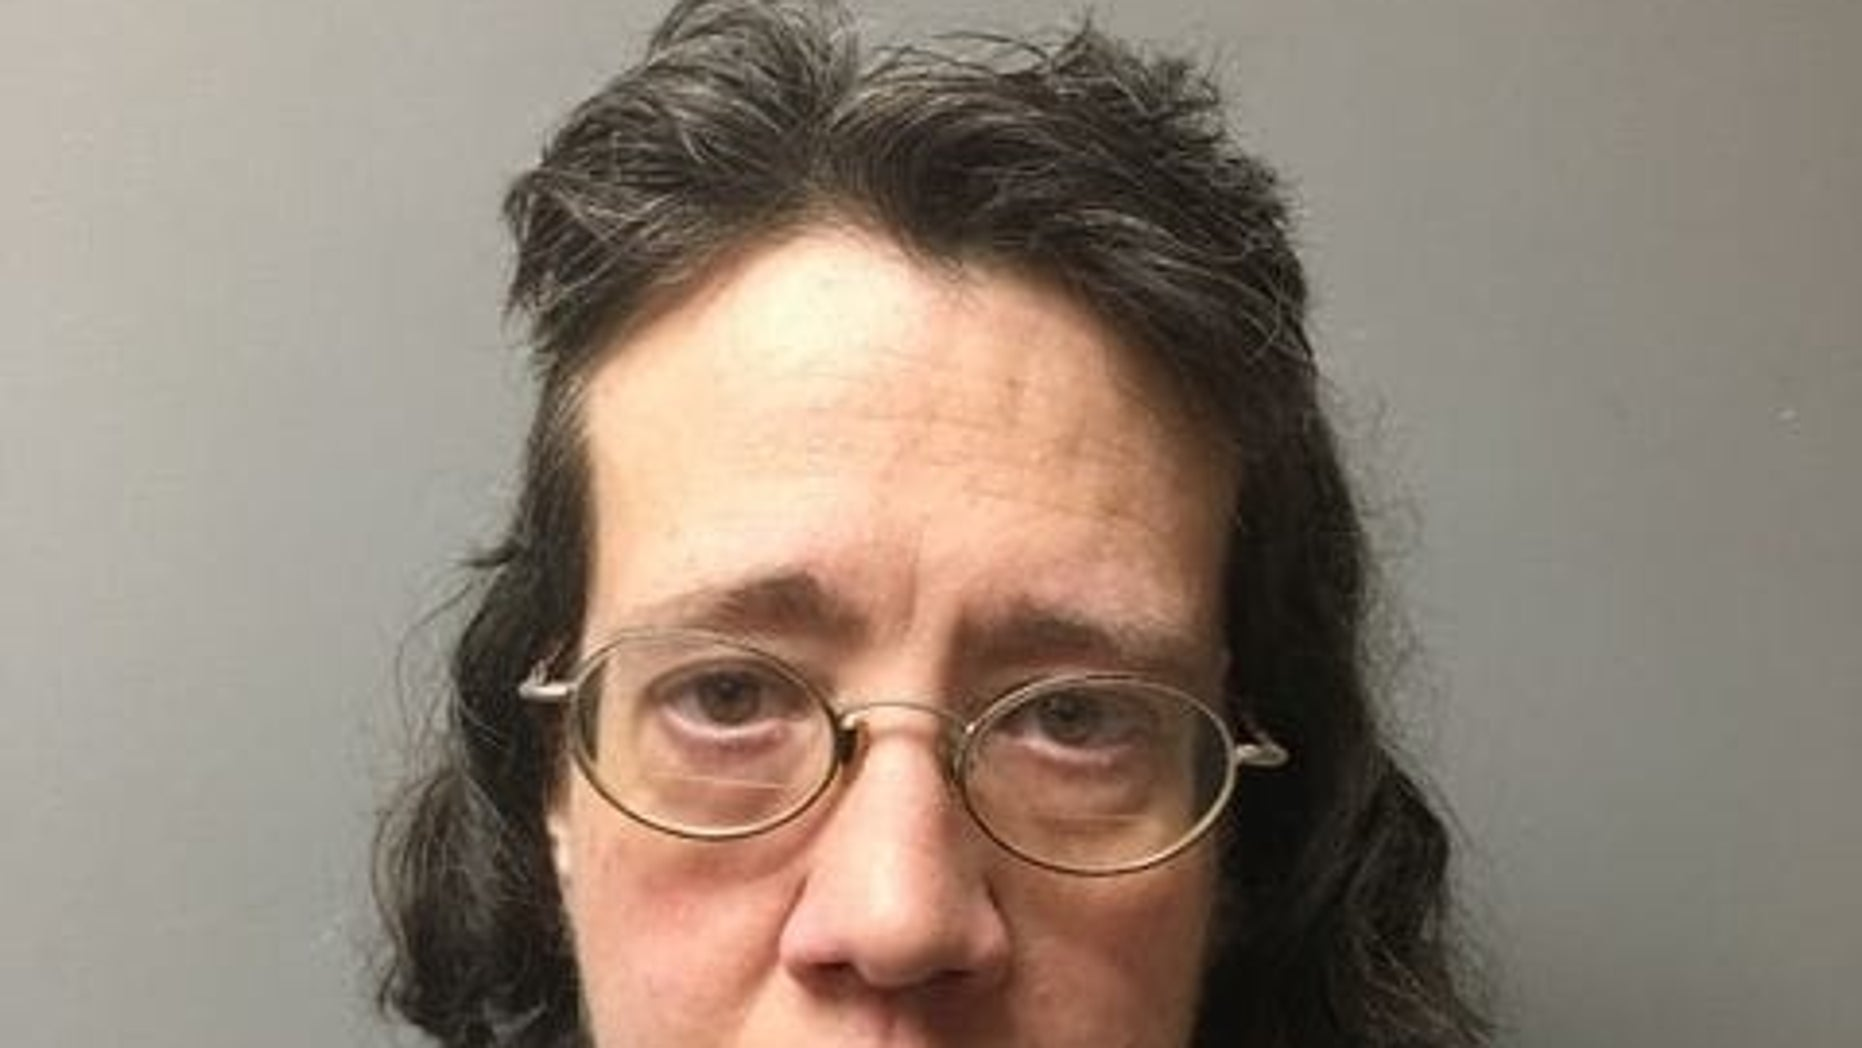 Jo-Whitney Outland, 55, of Bristol, Va., was accused of hiding her mother's decomposing body inside their home for weeks, covering it with dozens of blankets and surrounding it with air fresheners to mask the smell.